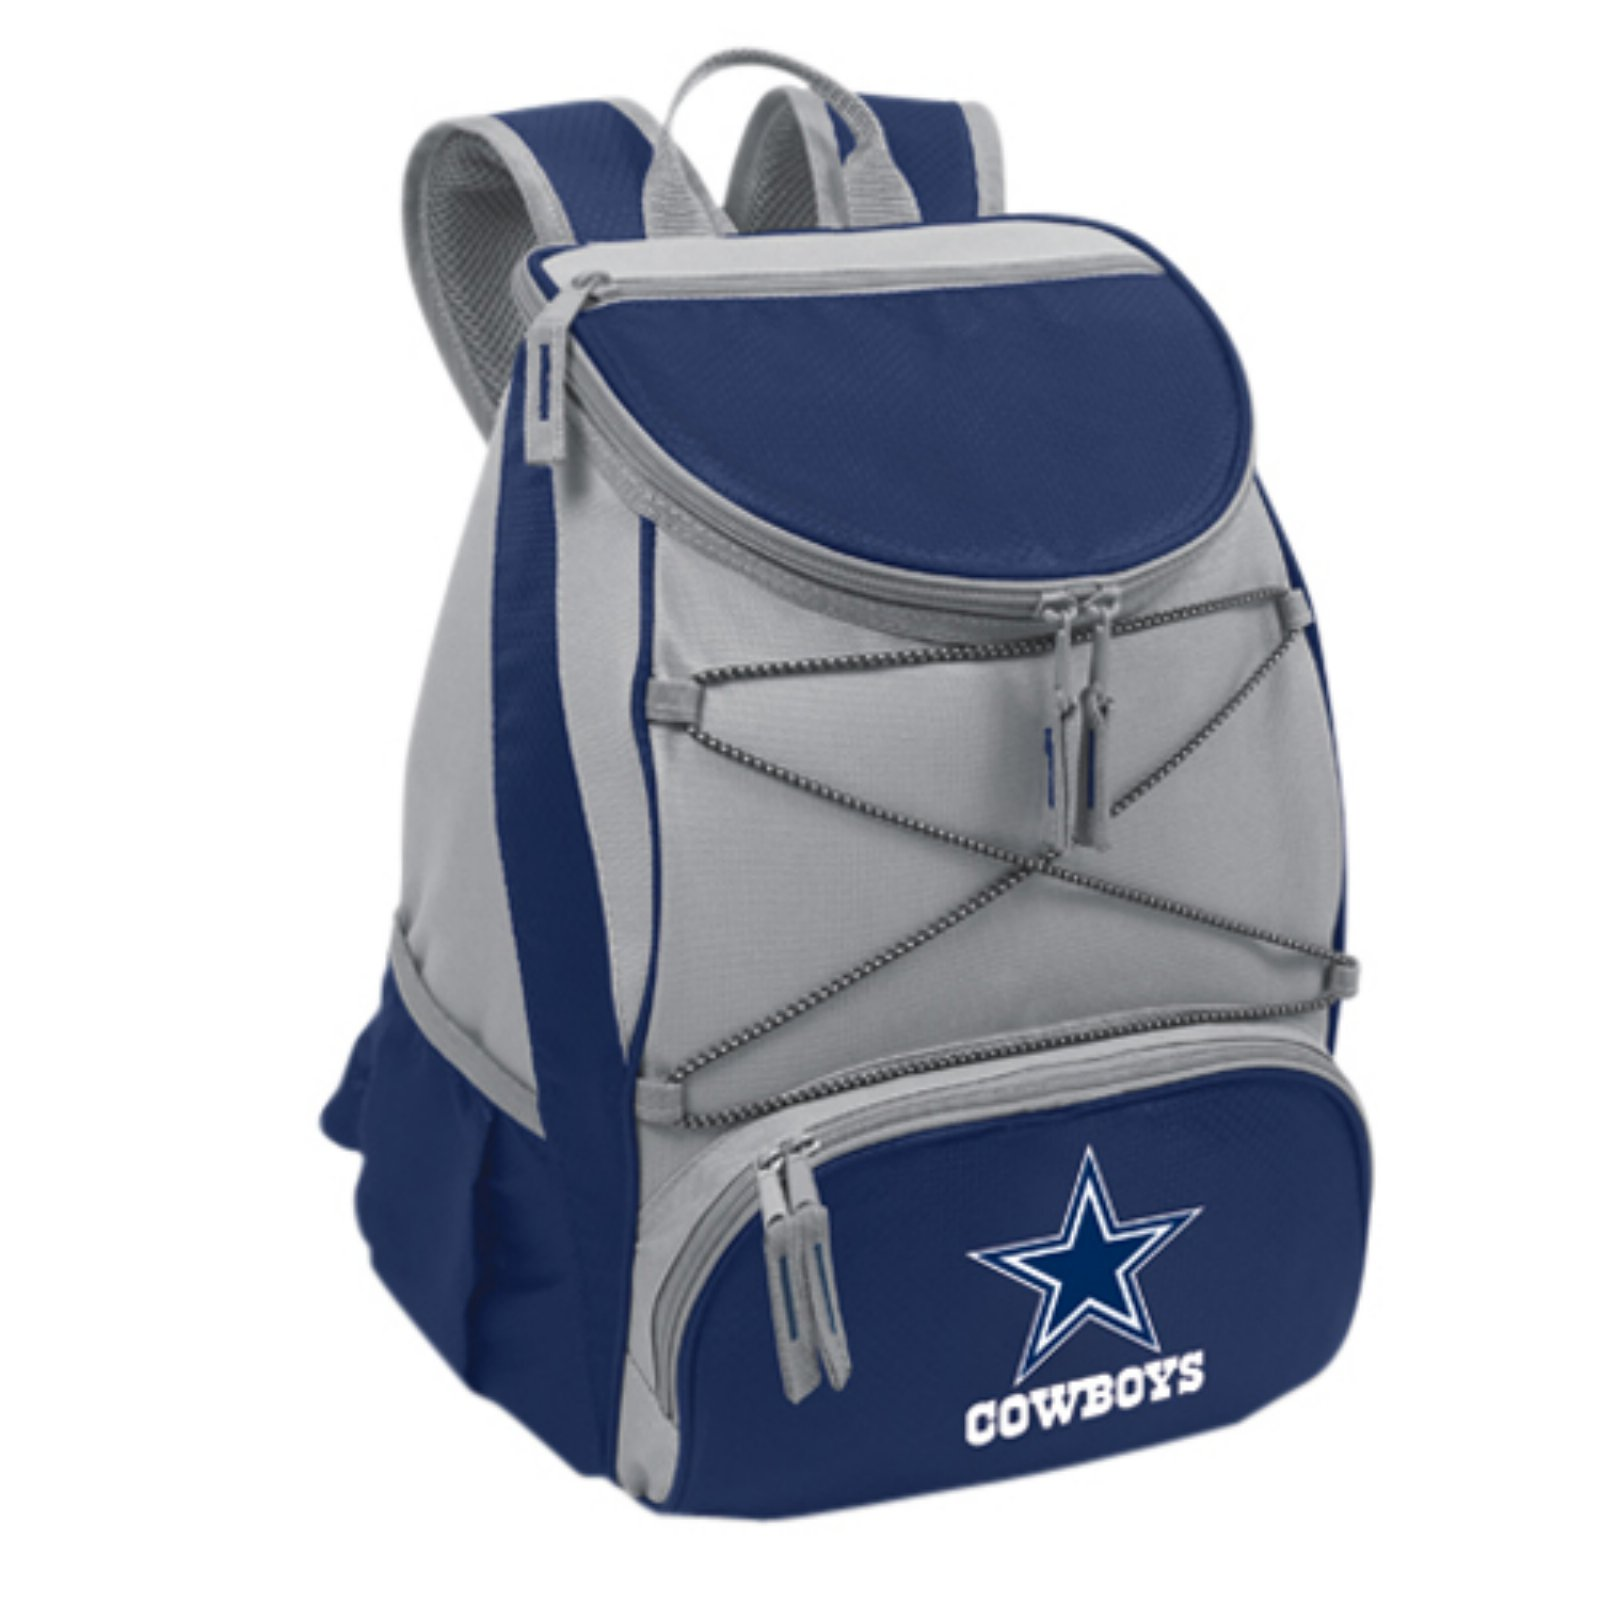 Picnic Time PTX Cooler, Navy Dallas Cowboys Digital Print